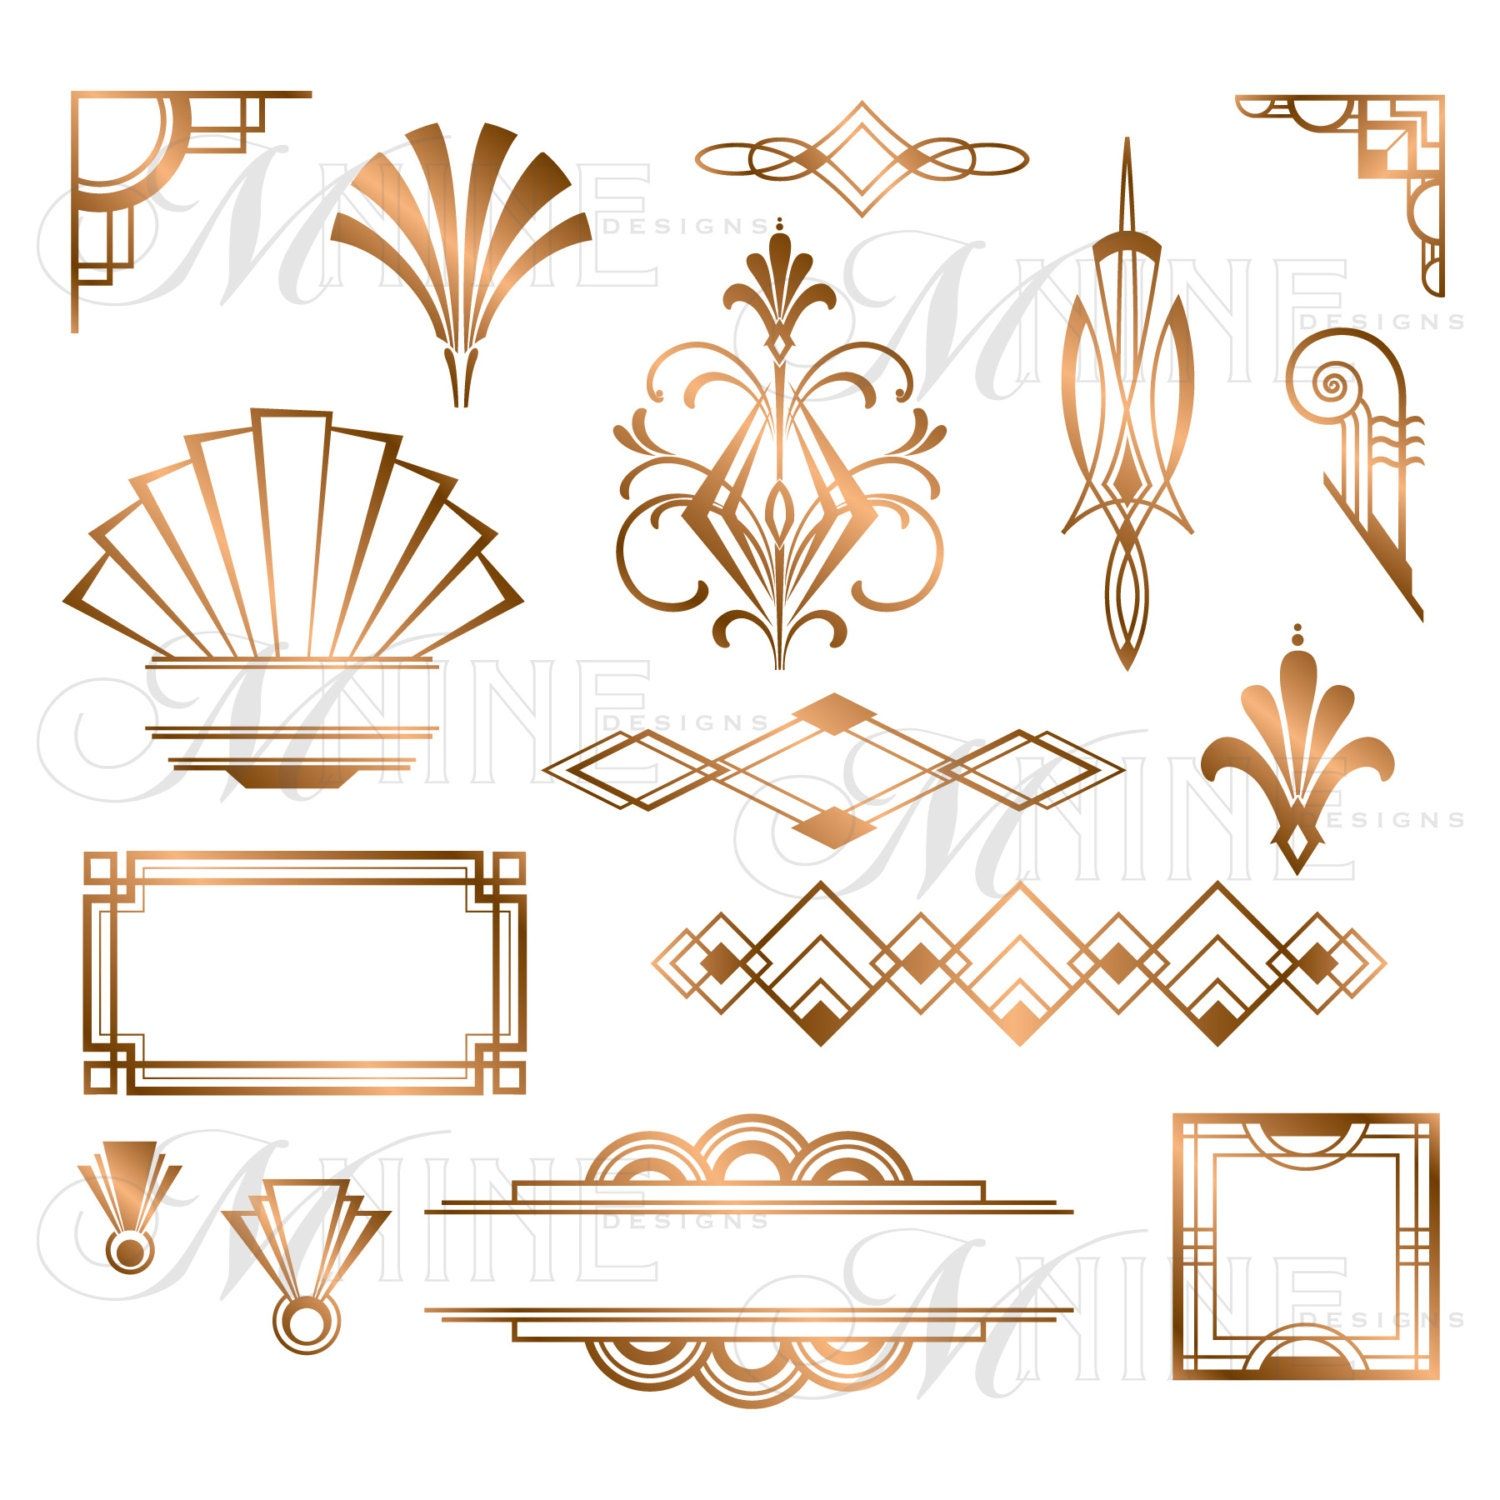 Bronze art deco accents clipart design elements by - Art deco design elements ...